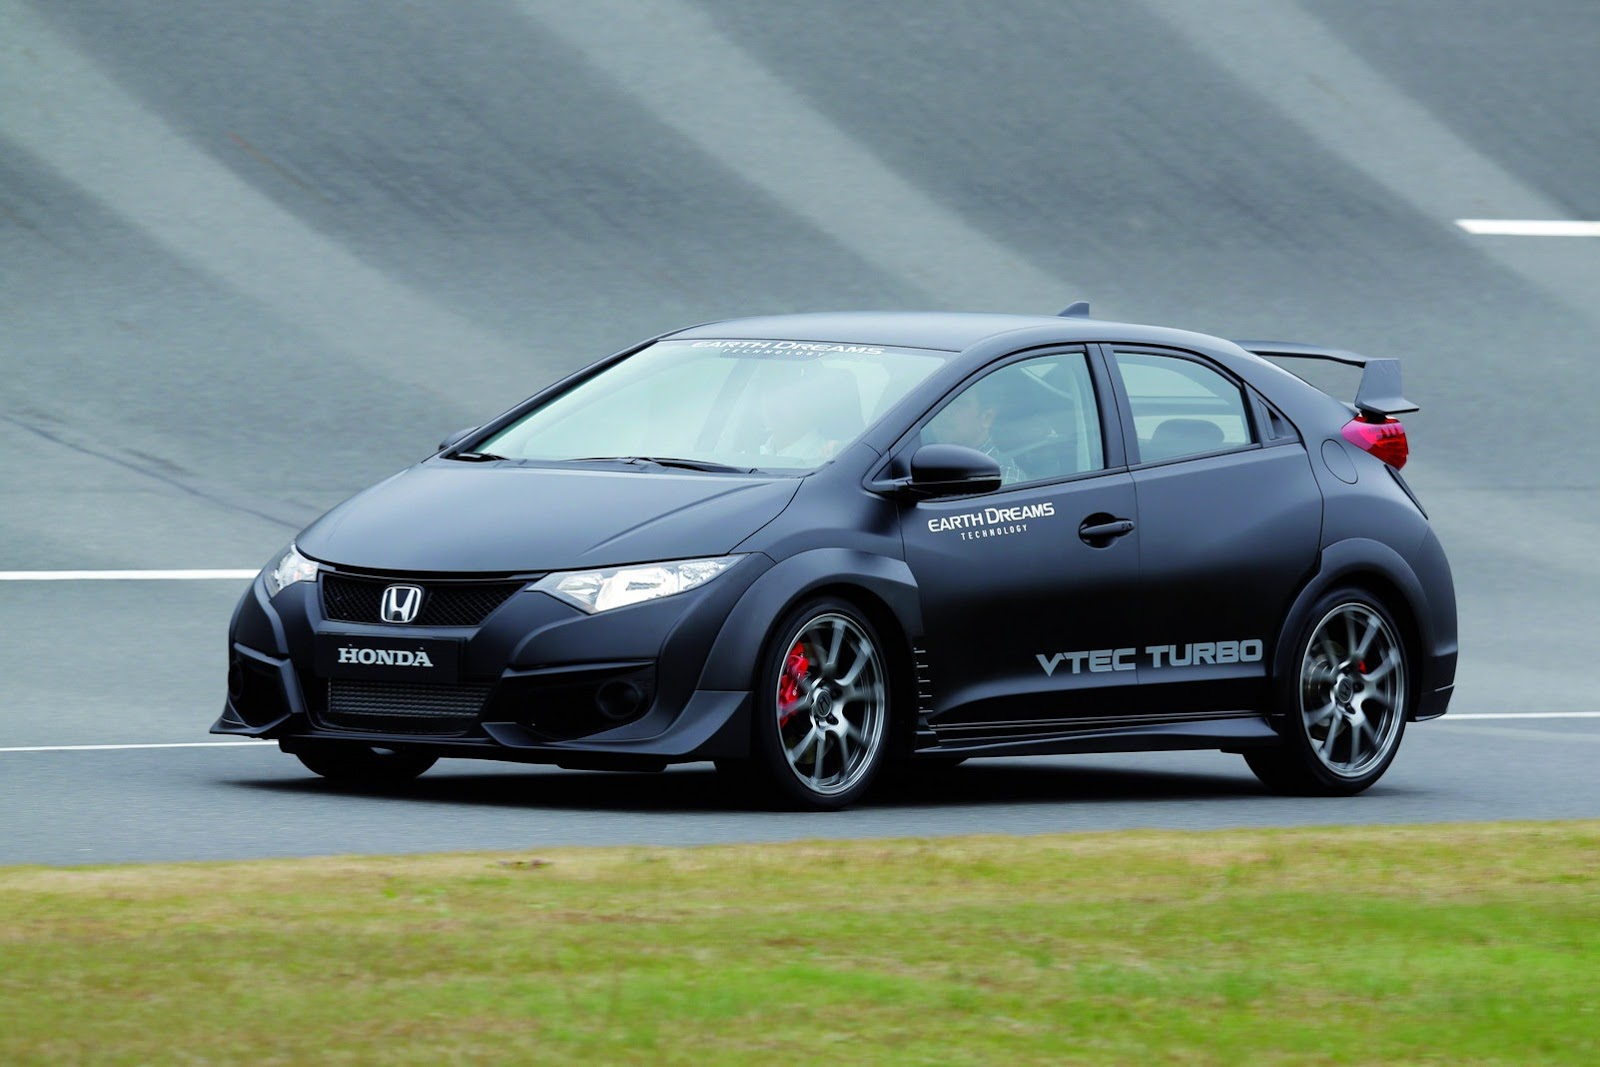 honda reveals new civic type r with vtec turbo engine. Black Bedroom Furniture Sets. Home Design Ideas